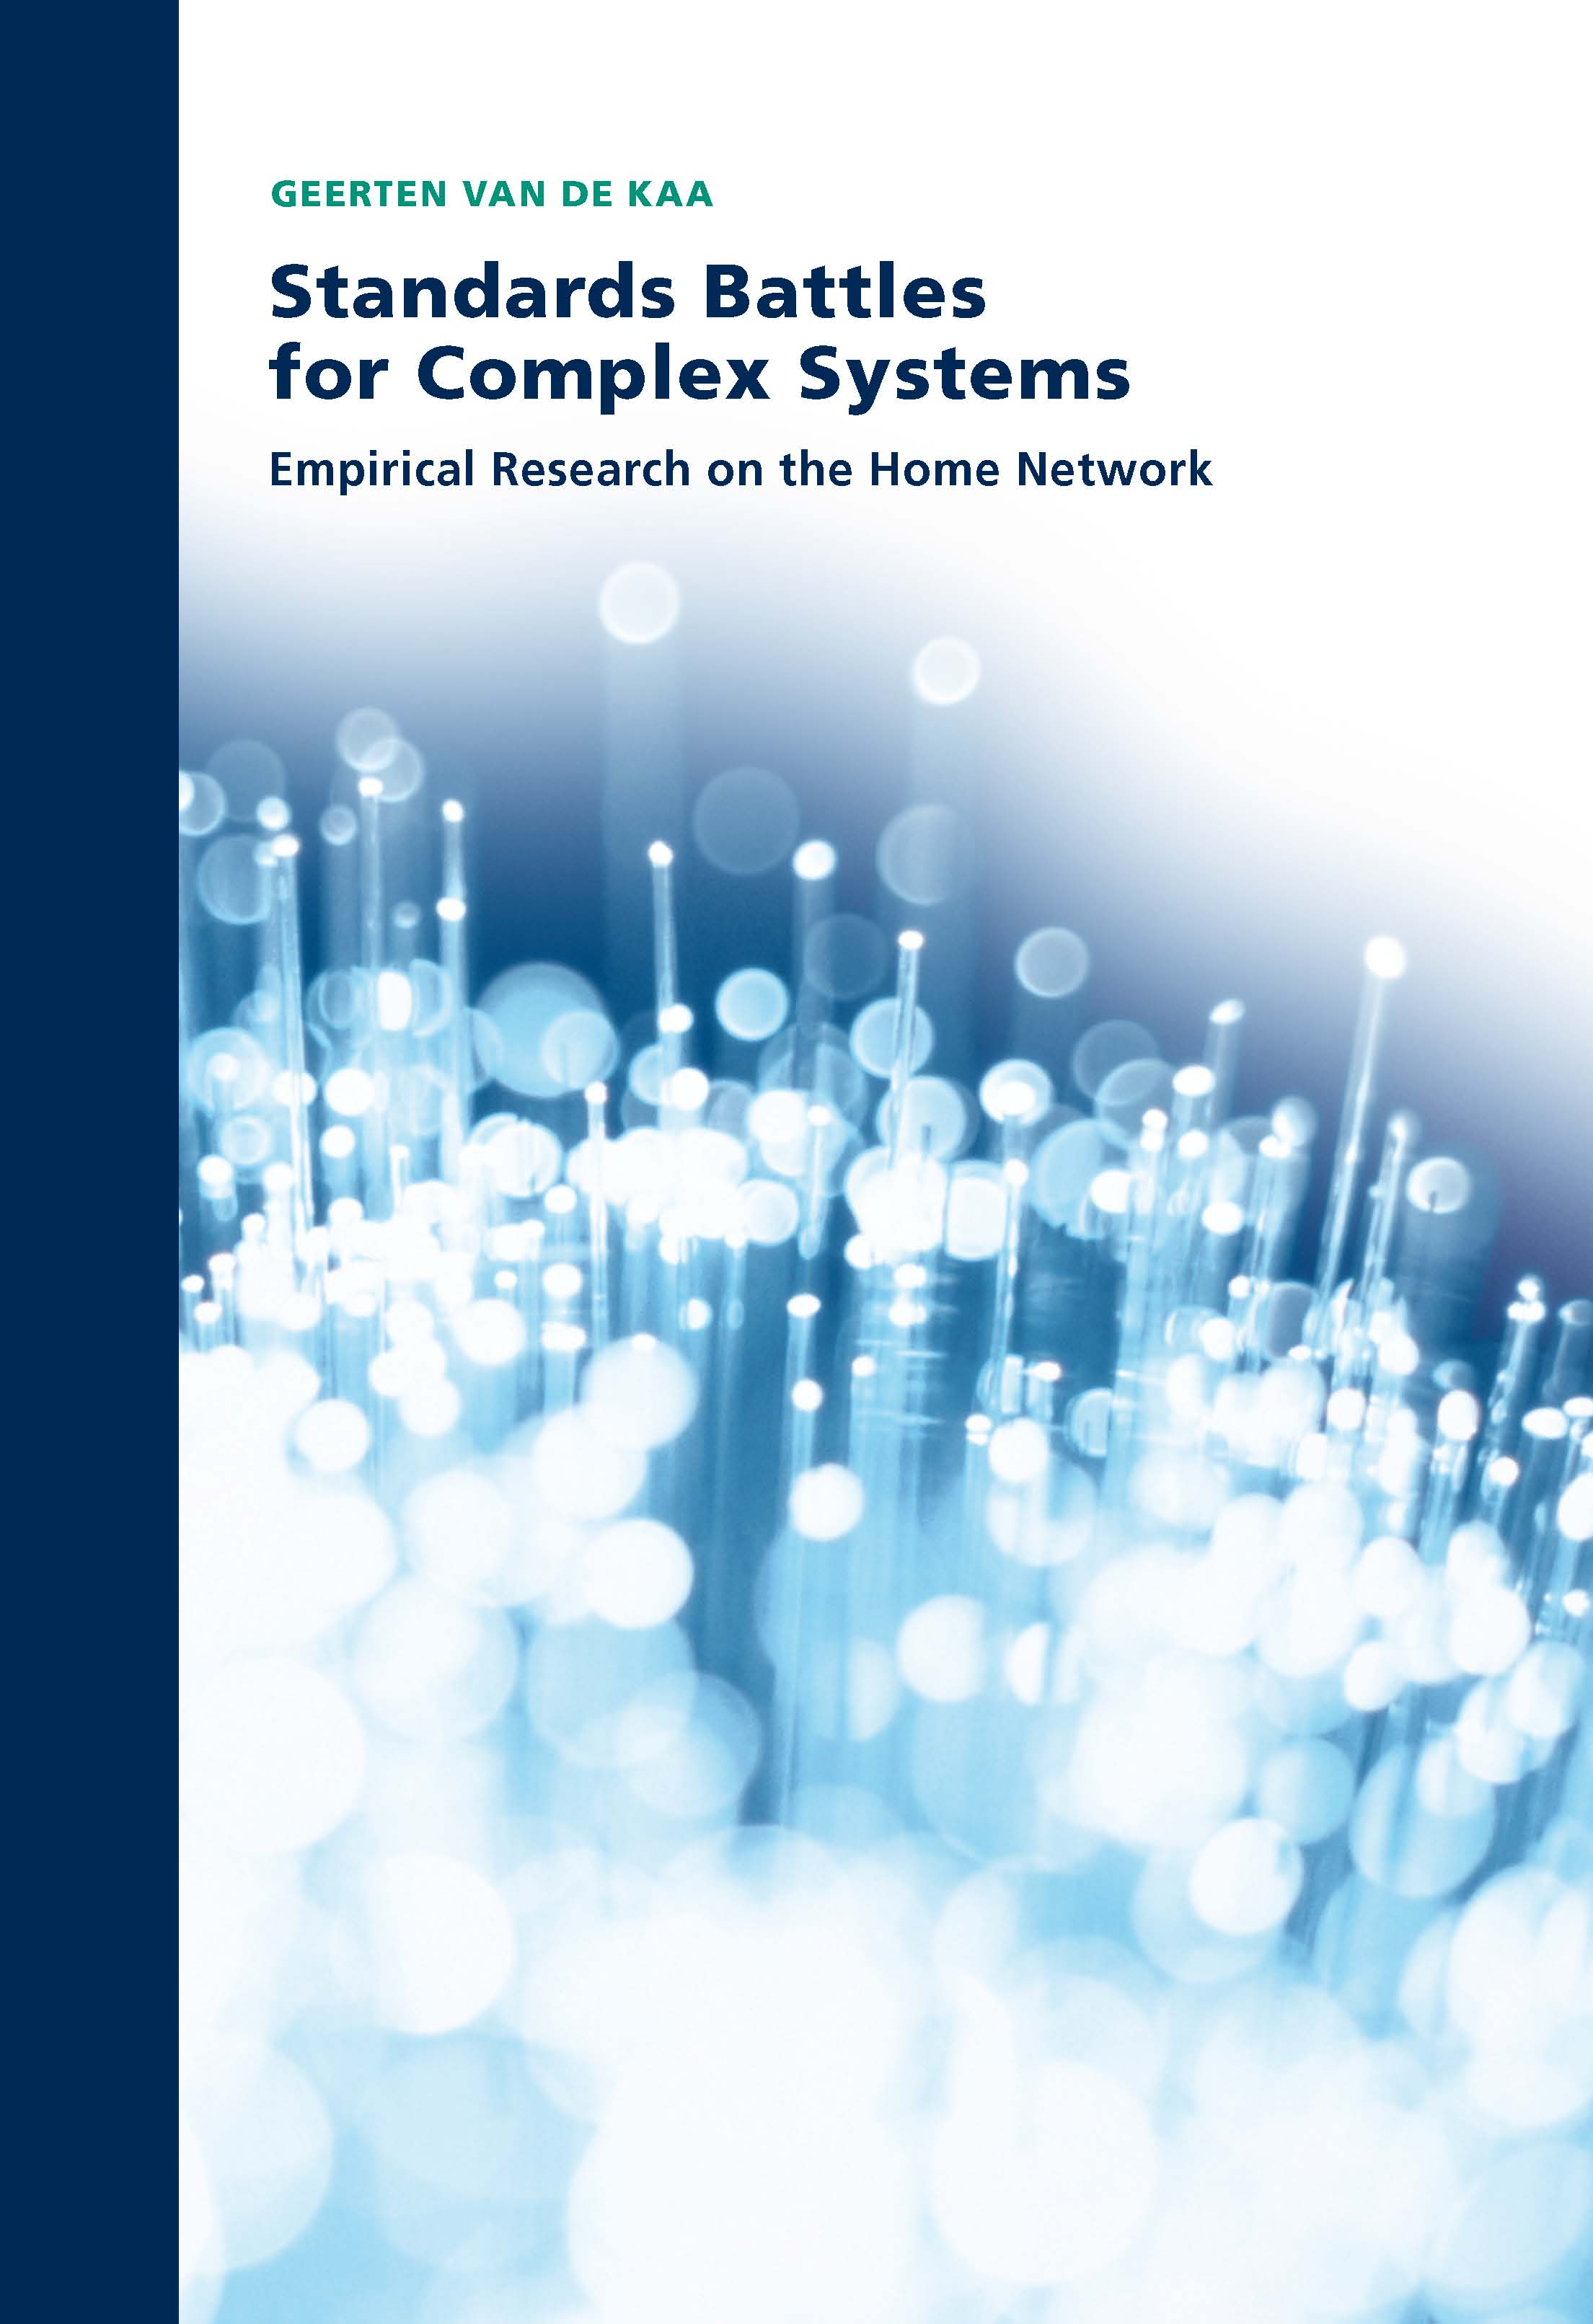 Standards Battles for Complex Systems: Empirical Research on the Home Network